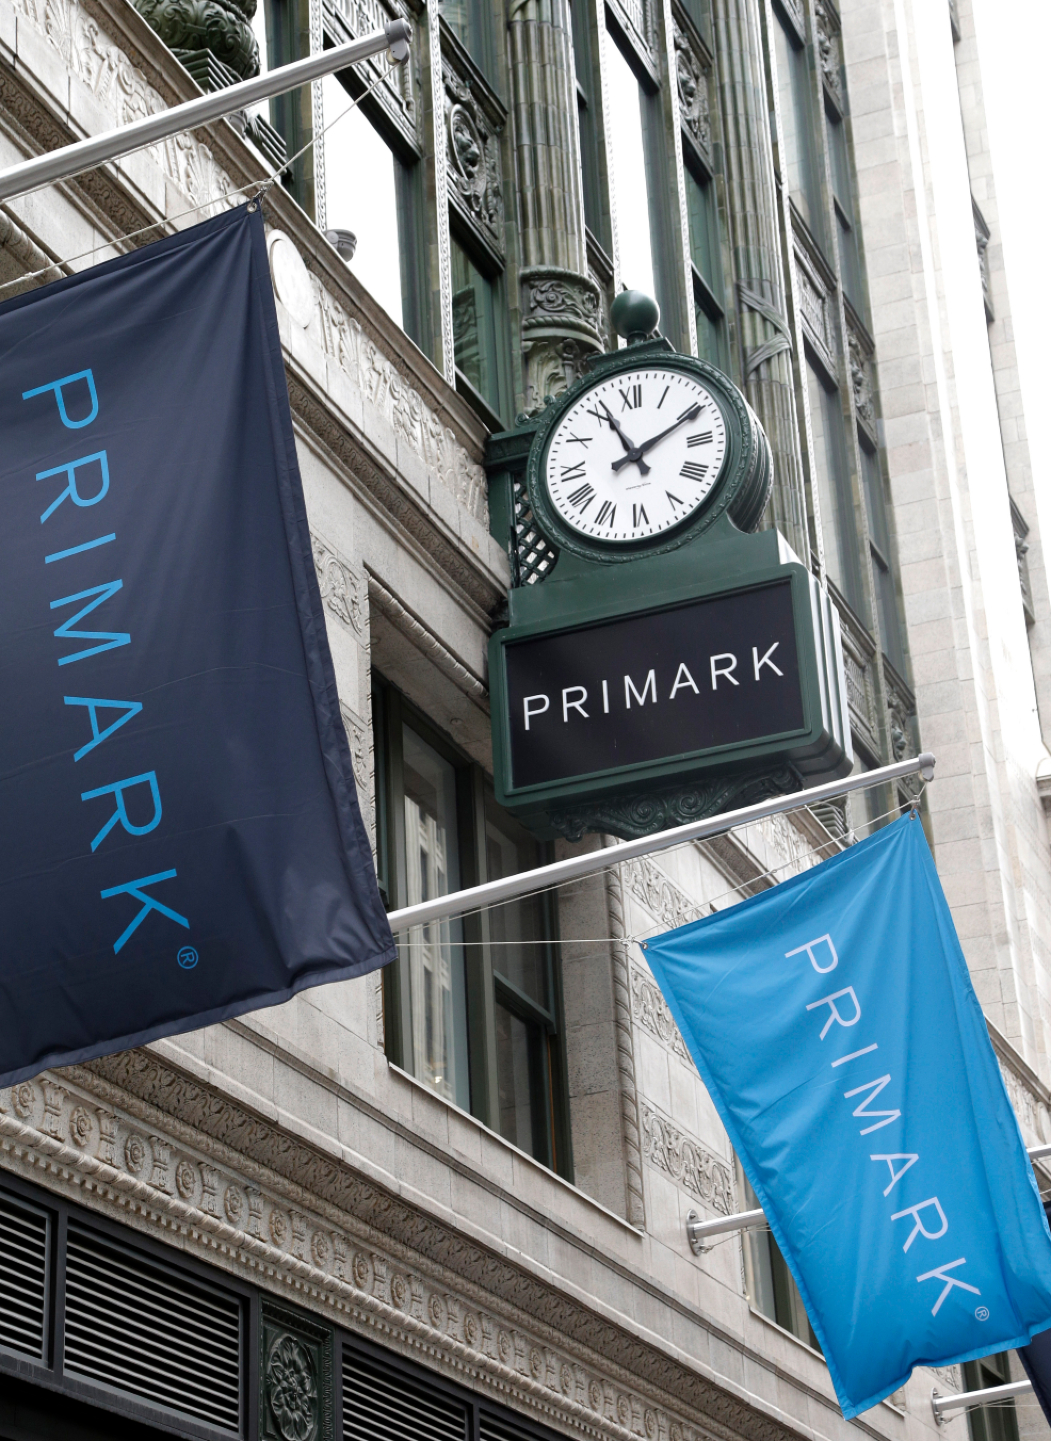 Value chain Primark will add two new stores at Macerich shopping centers in Tysons Corner, Va., and Green Acres Mall on Long Island.